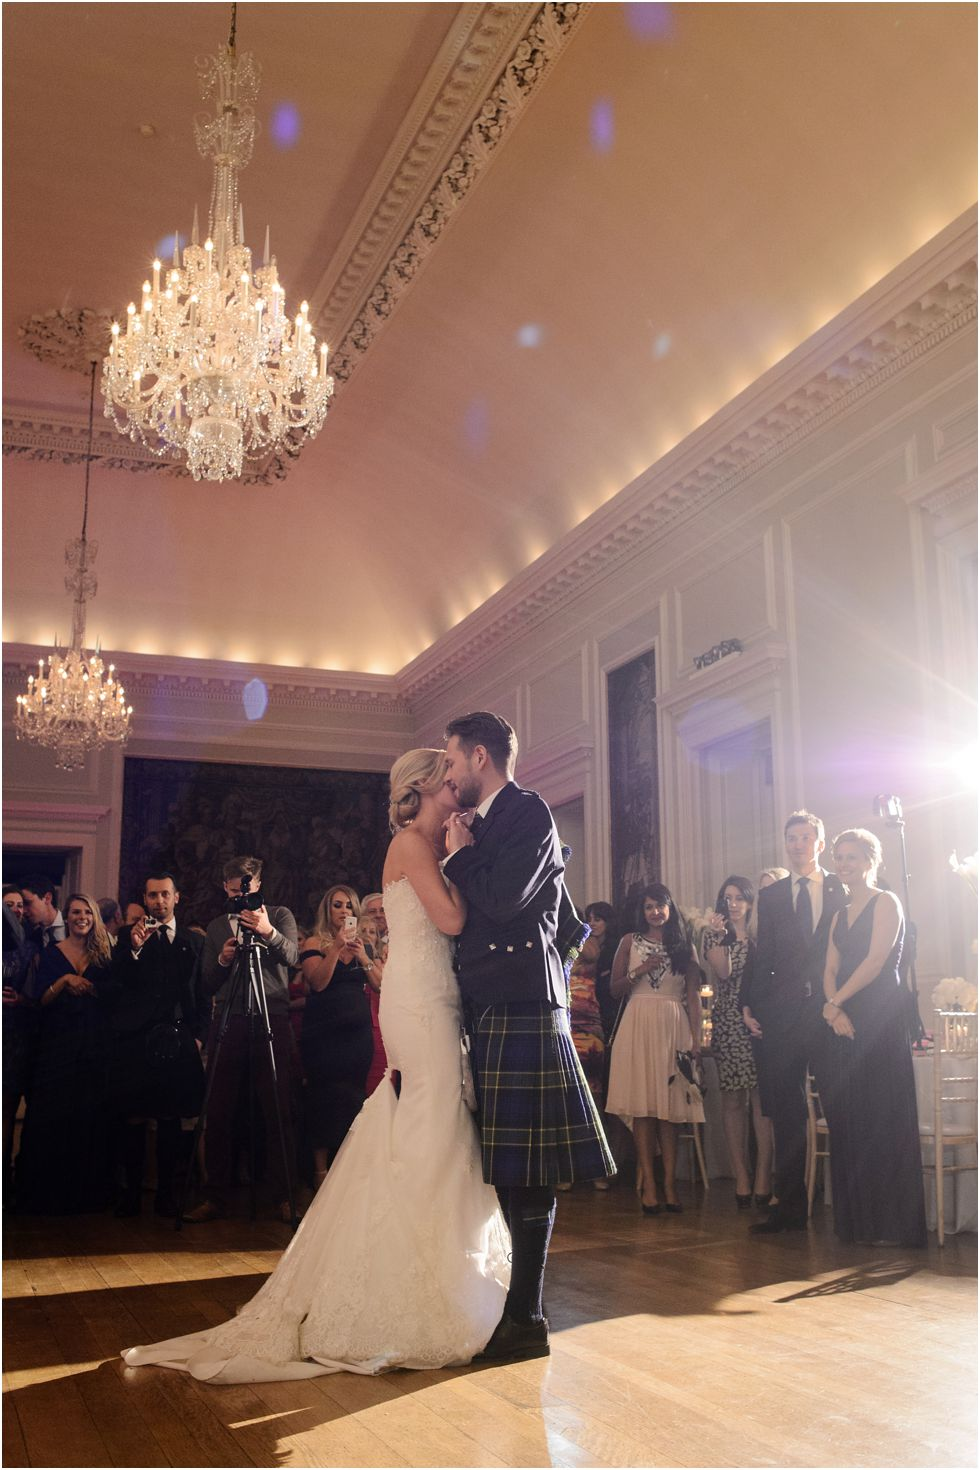 Hopetoun-House-wedding-photography-Edinburgh-78.jpg